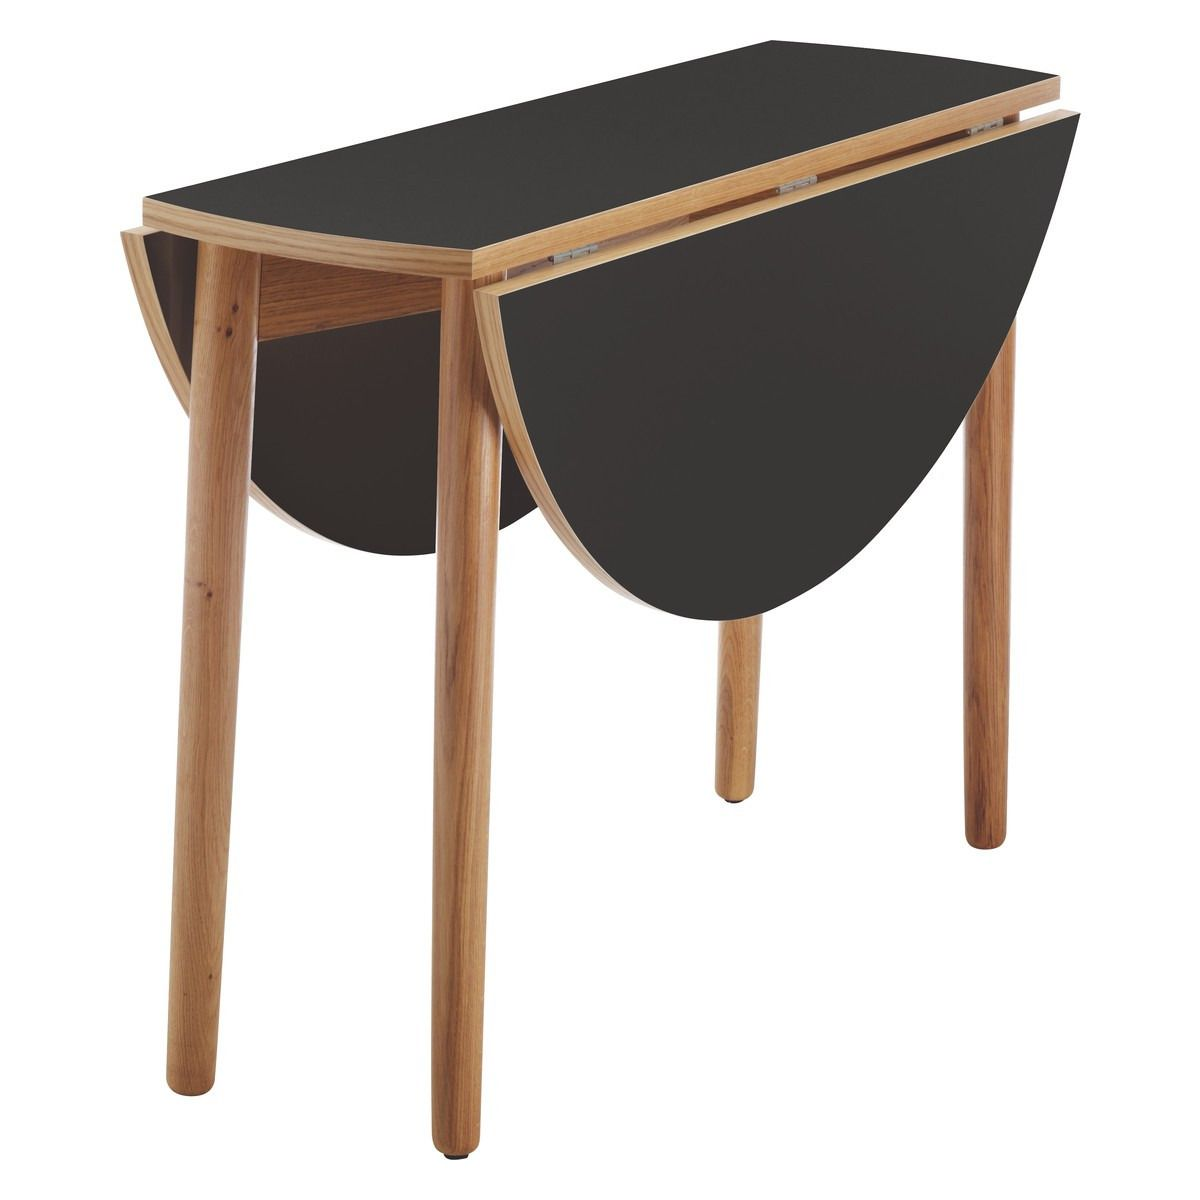 Ordinaire 100+ Round Fold Down Table   Cool Furniture Ideas Check More At Http:/